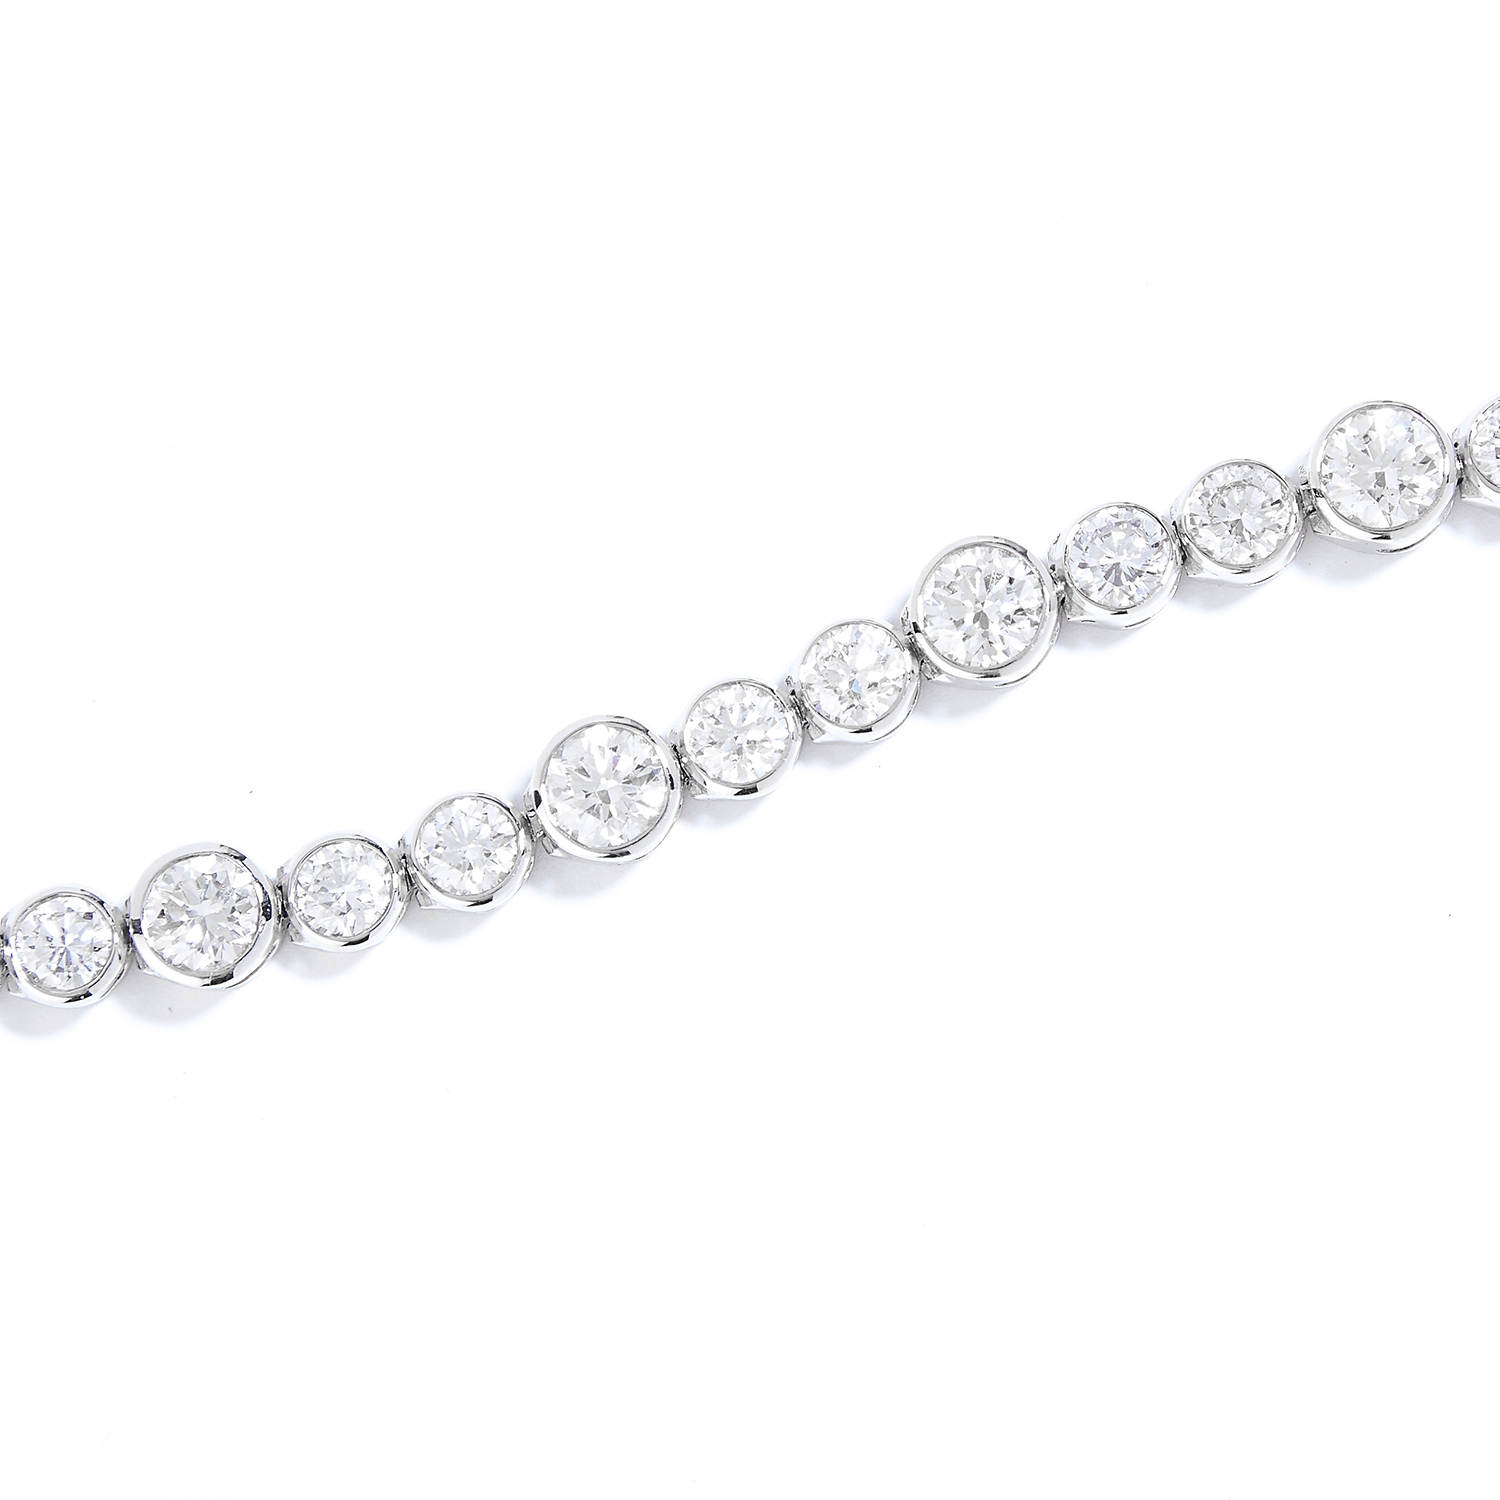 10.0 CARAT DIAMOND BRACELET, CARTIER in platinum, comprising of thirty round cut diamonds of various - Bild 2 aus 2